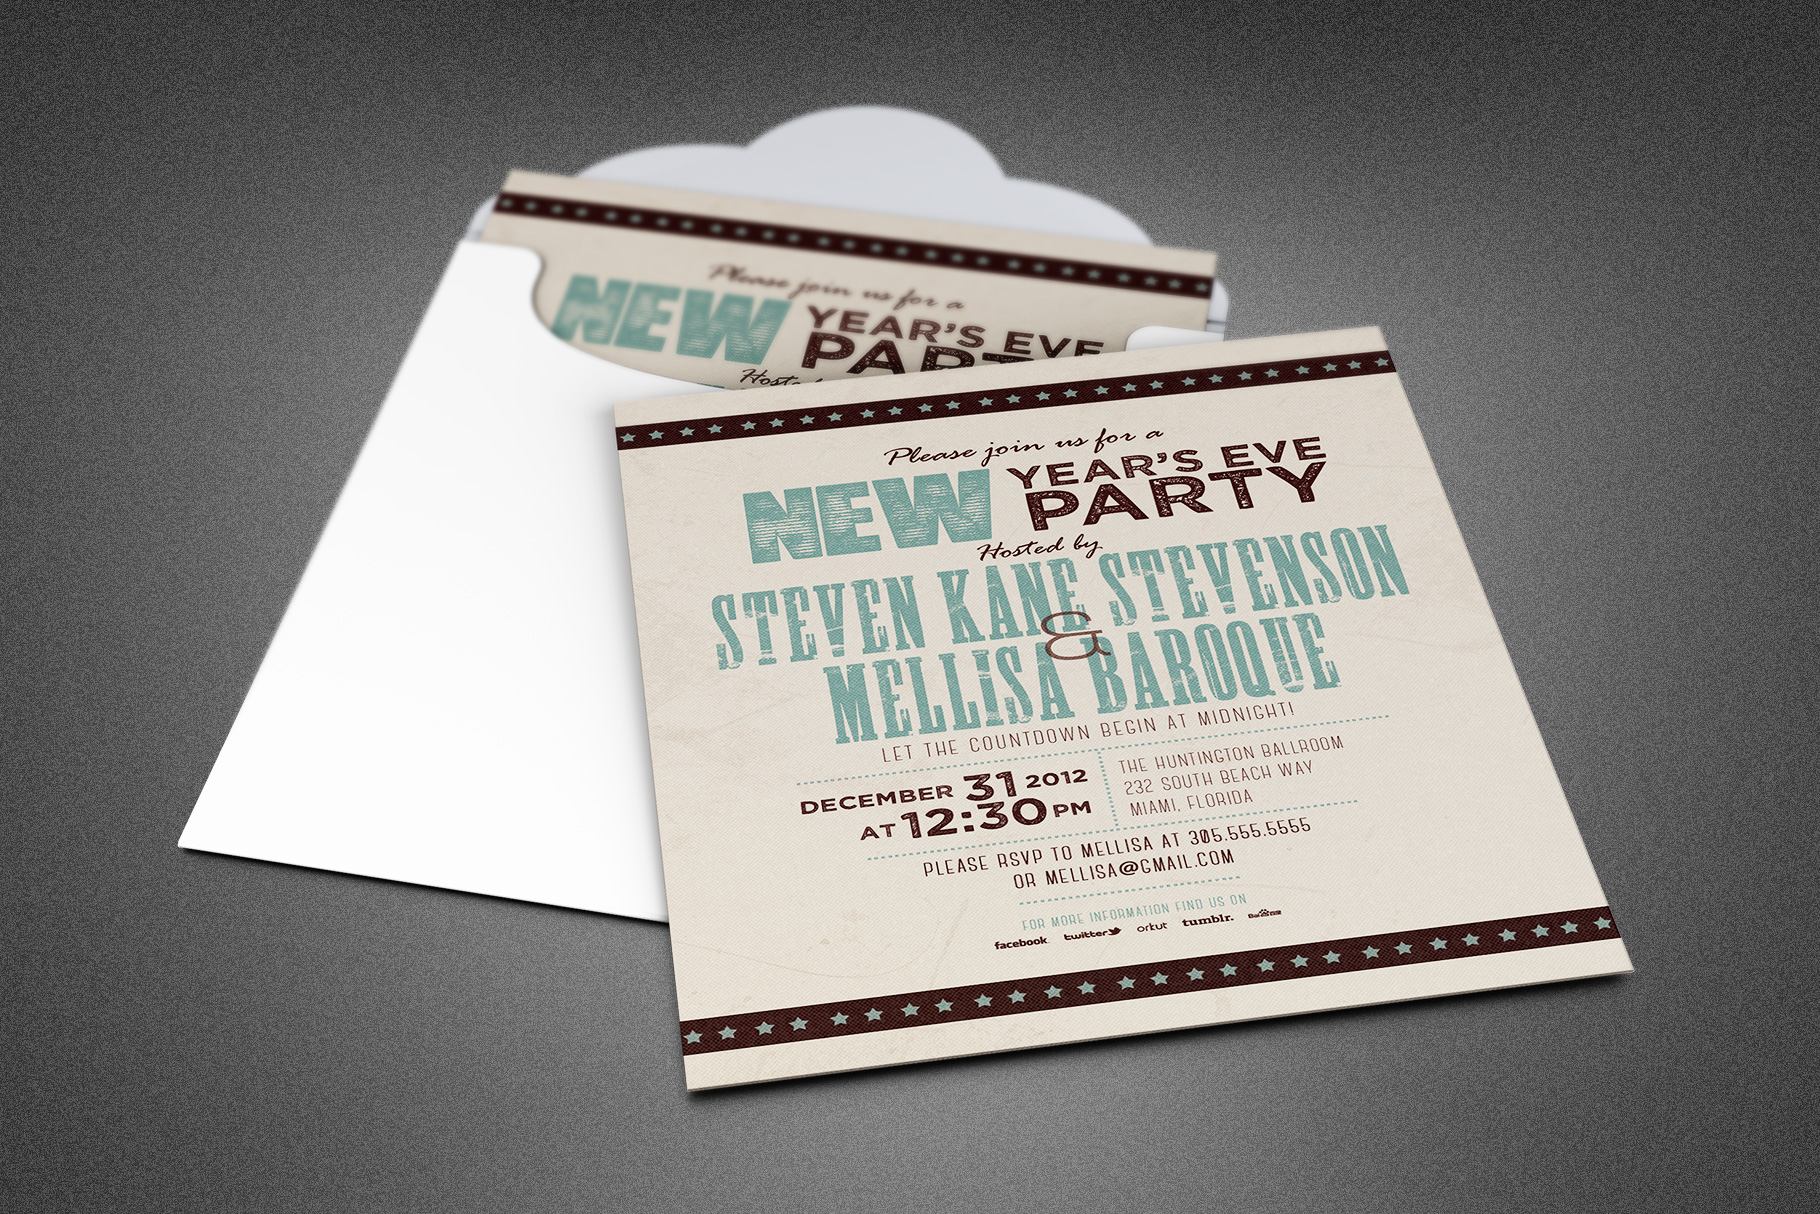 Retro New Year Party Invite Card Template example image 1